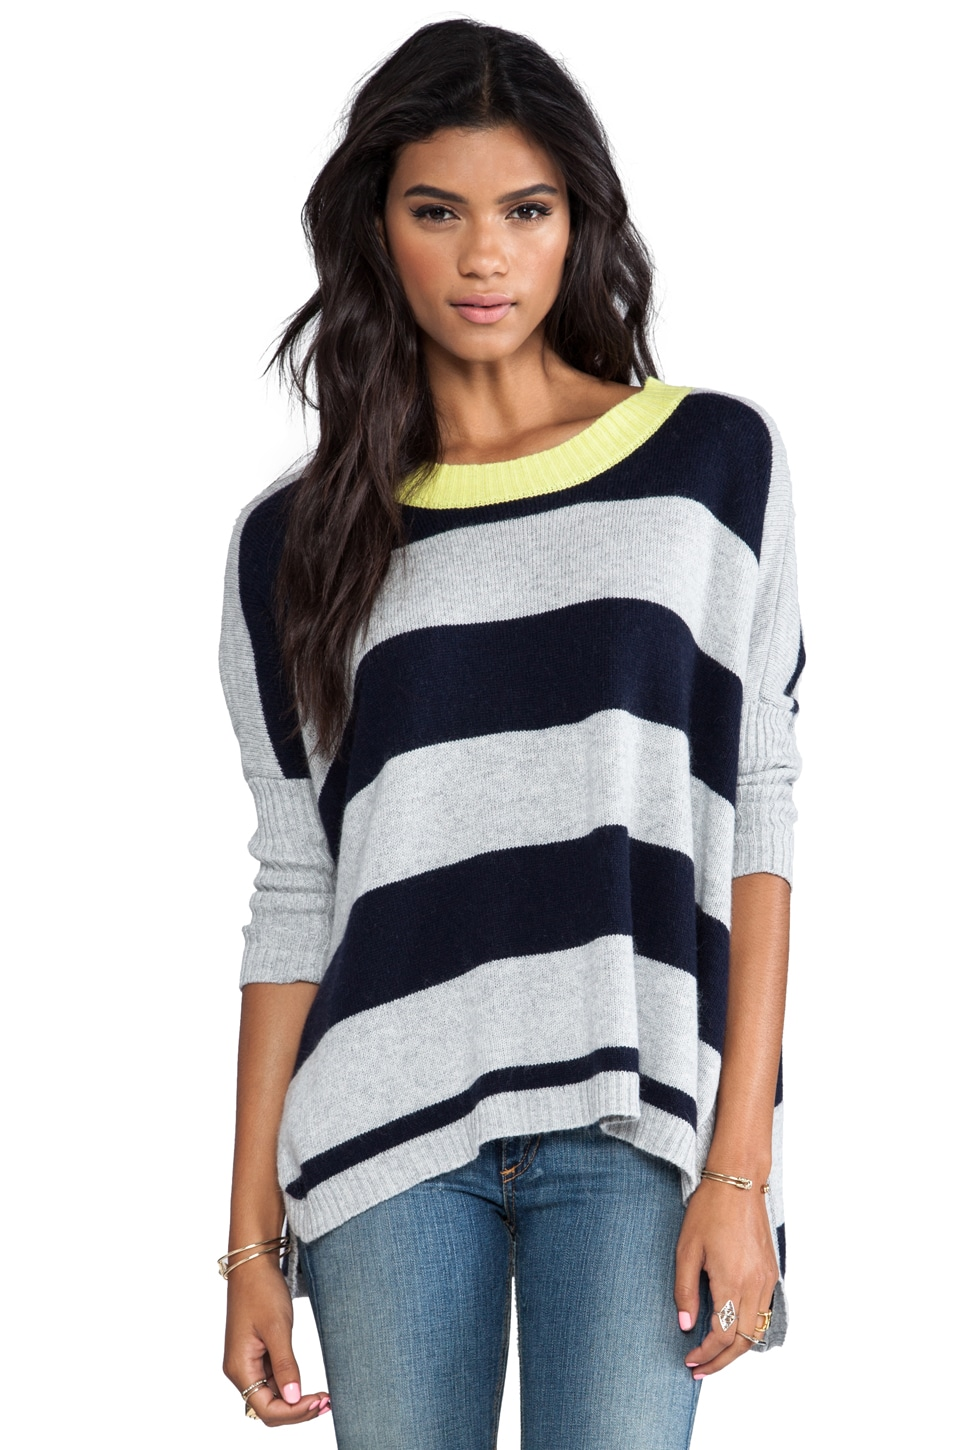 Central Park West Franklin Striped Sweater in Heather Grey/Navy